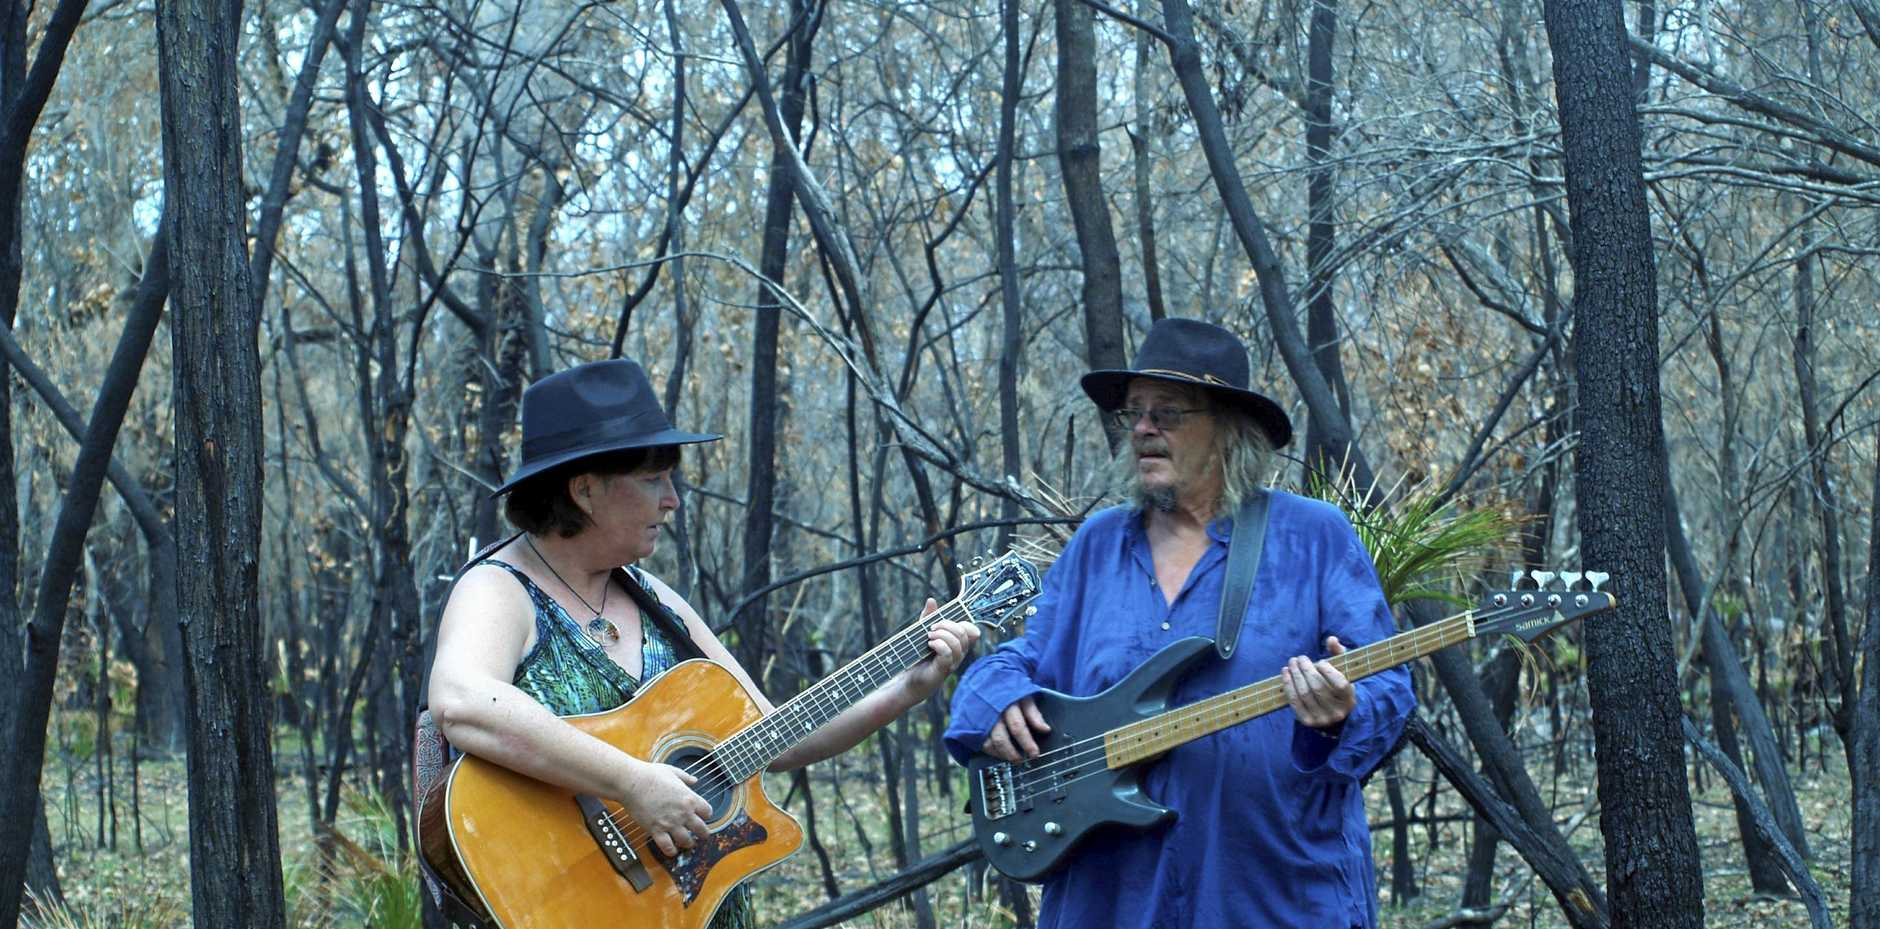 CREATIVE SPARK: Agnes Water duo Leah Chynoweth-Tidy and Ken Tidy will premiere their two music videos next month.